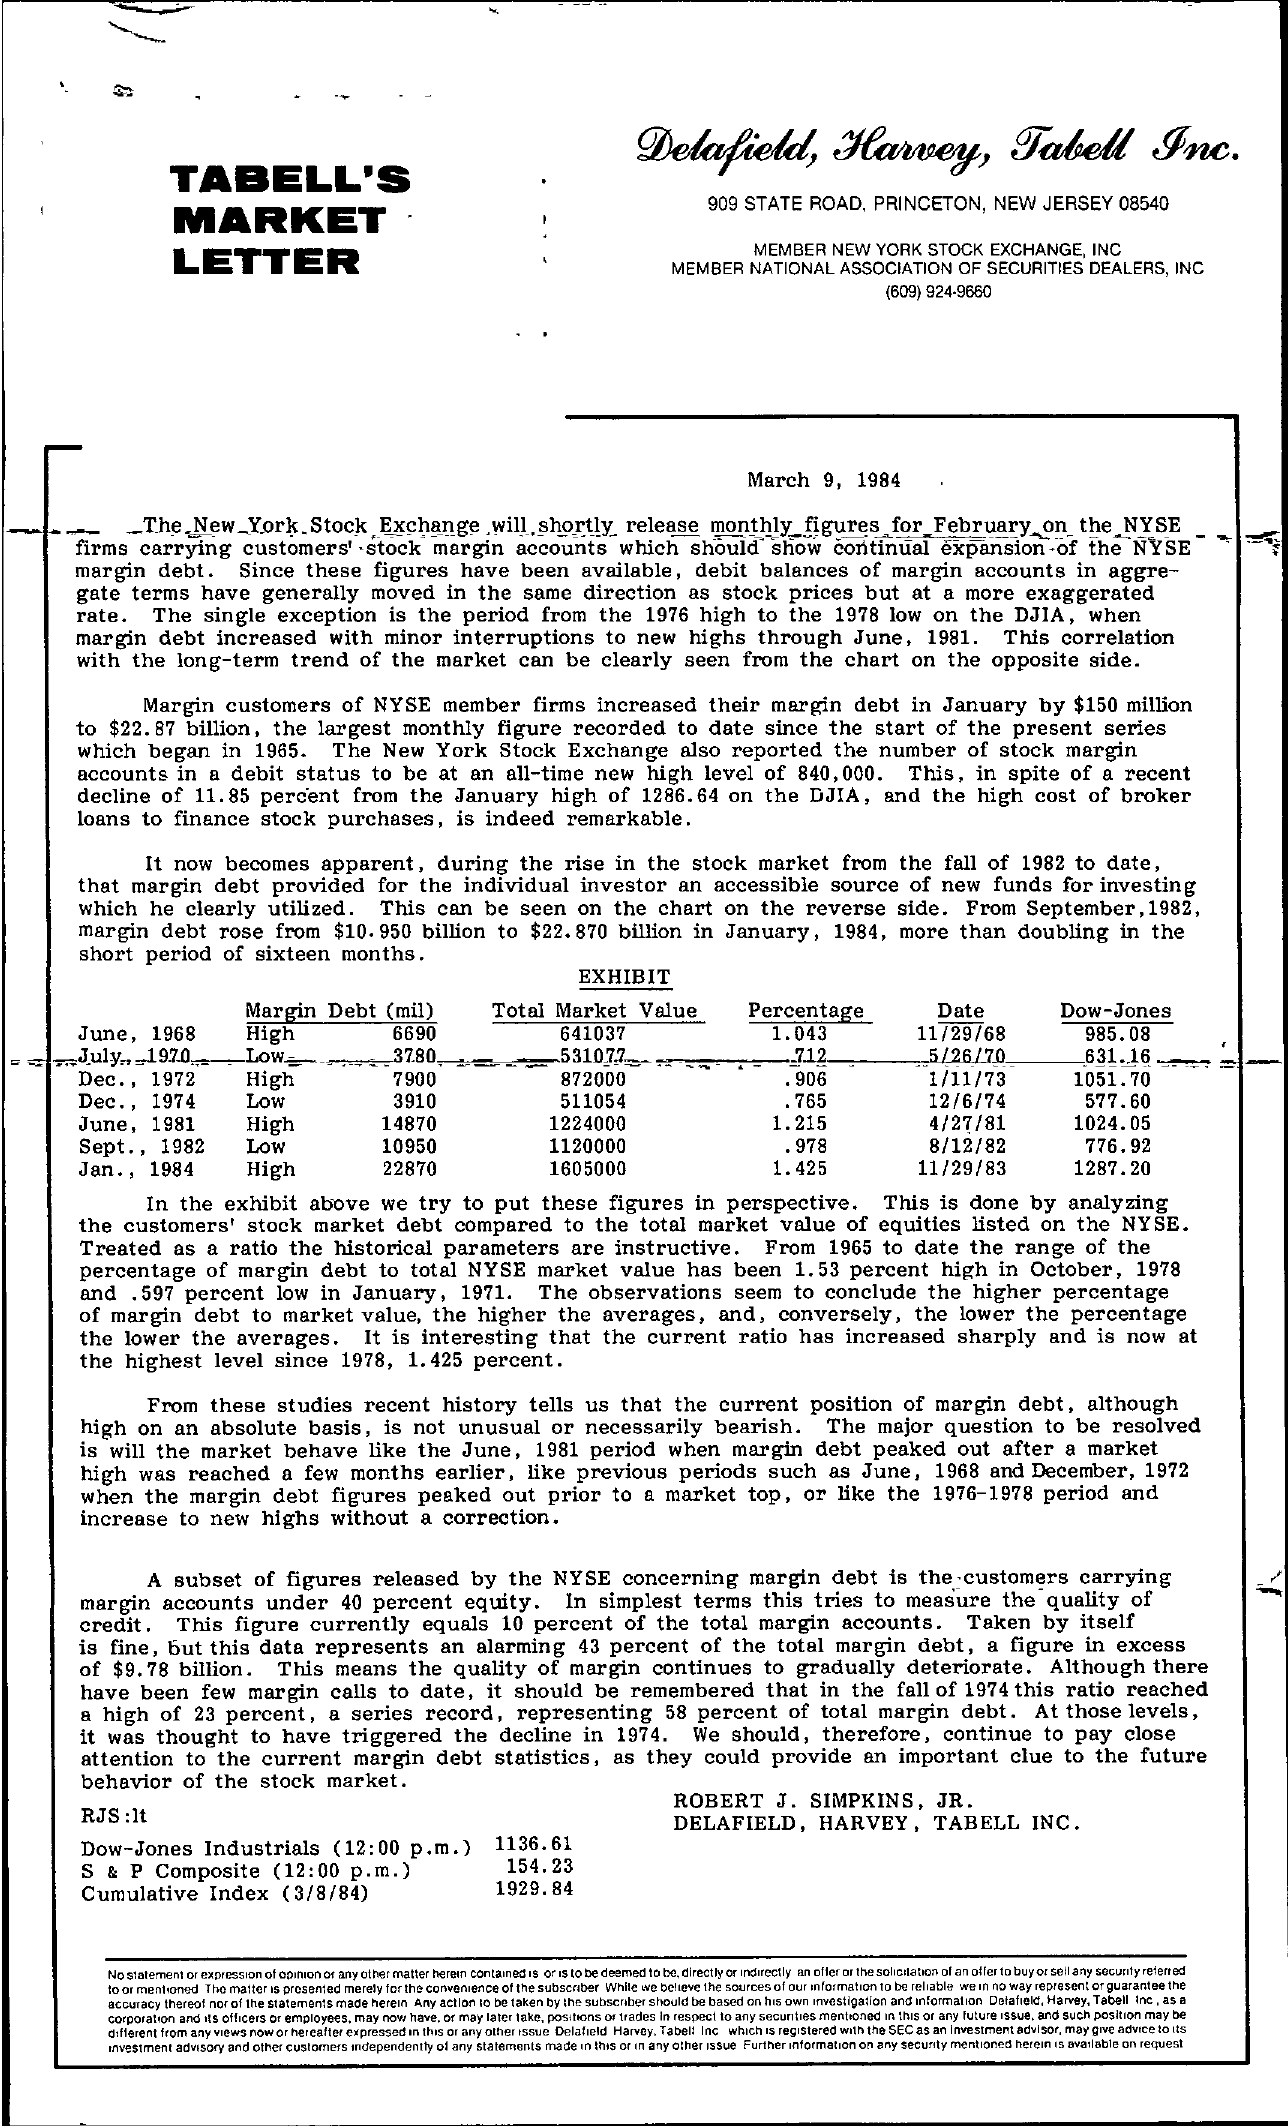 Tabell's Market Letter - March 09, 1984 page 1